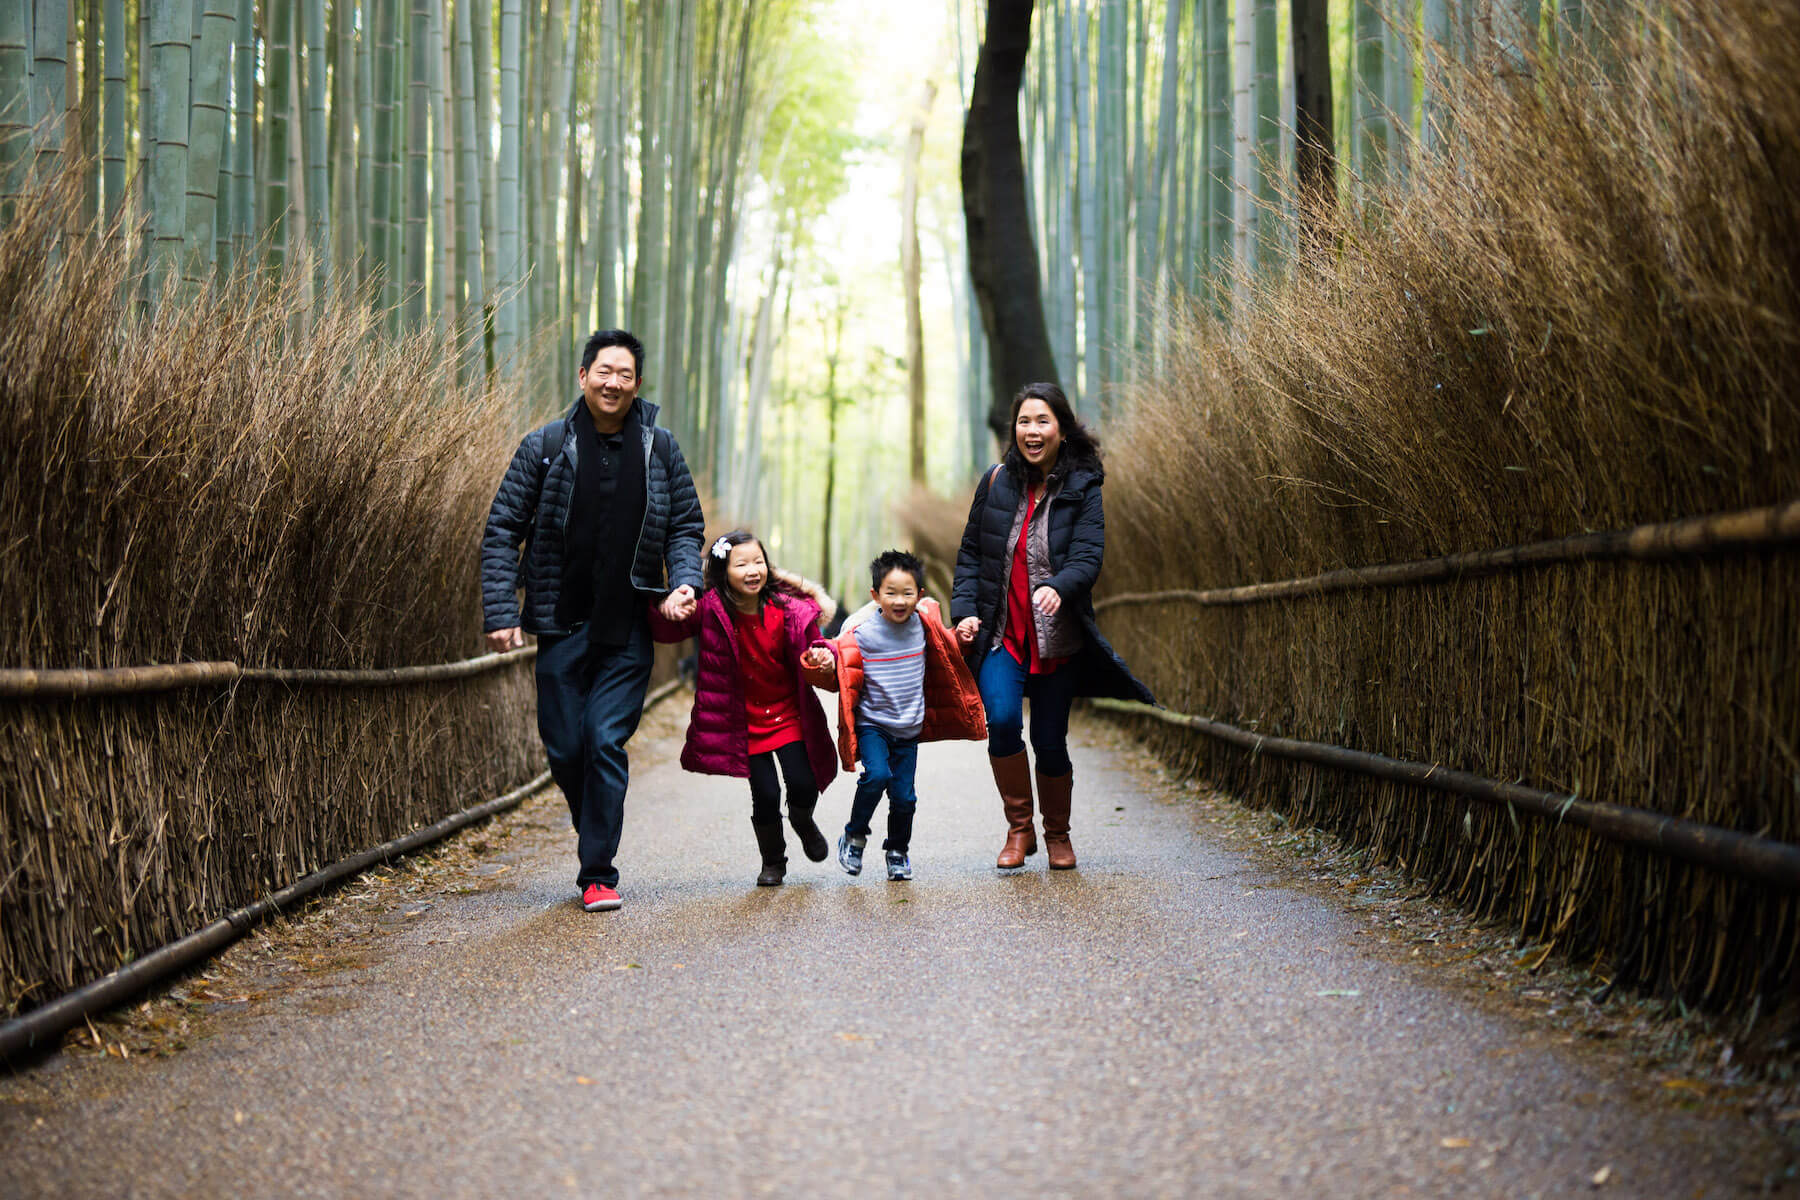 family running in bamboo forest Kyoto Japan